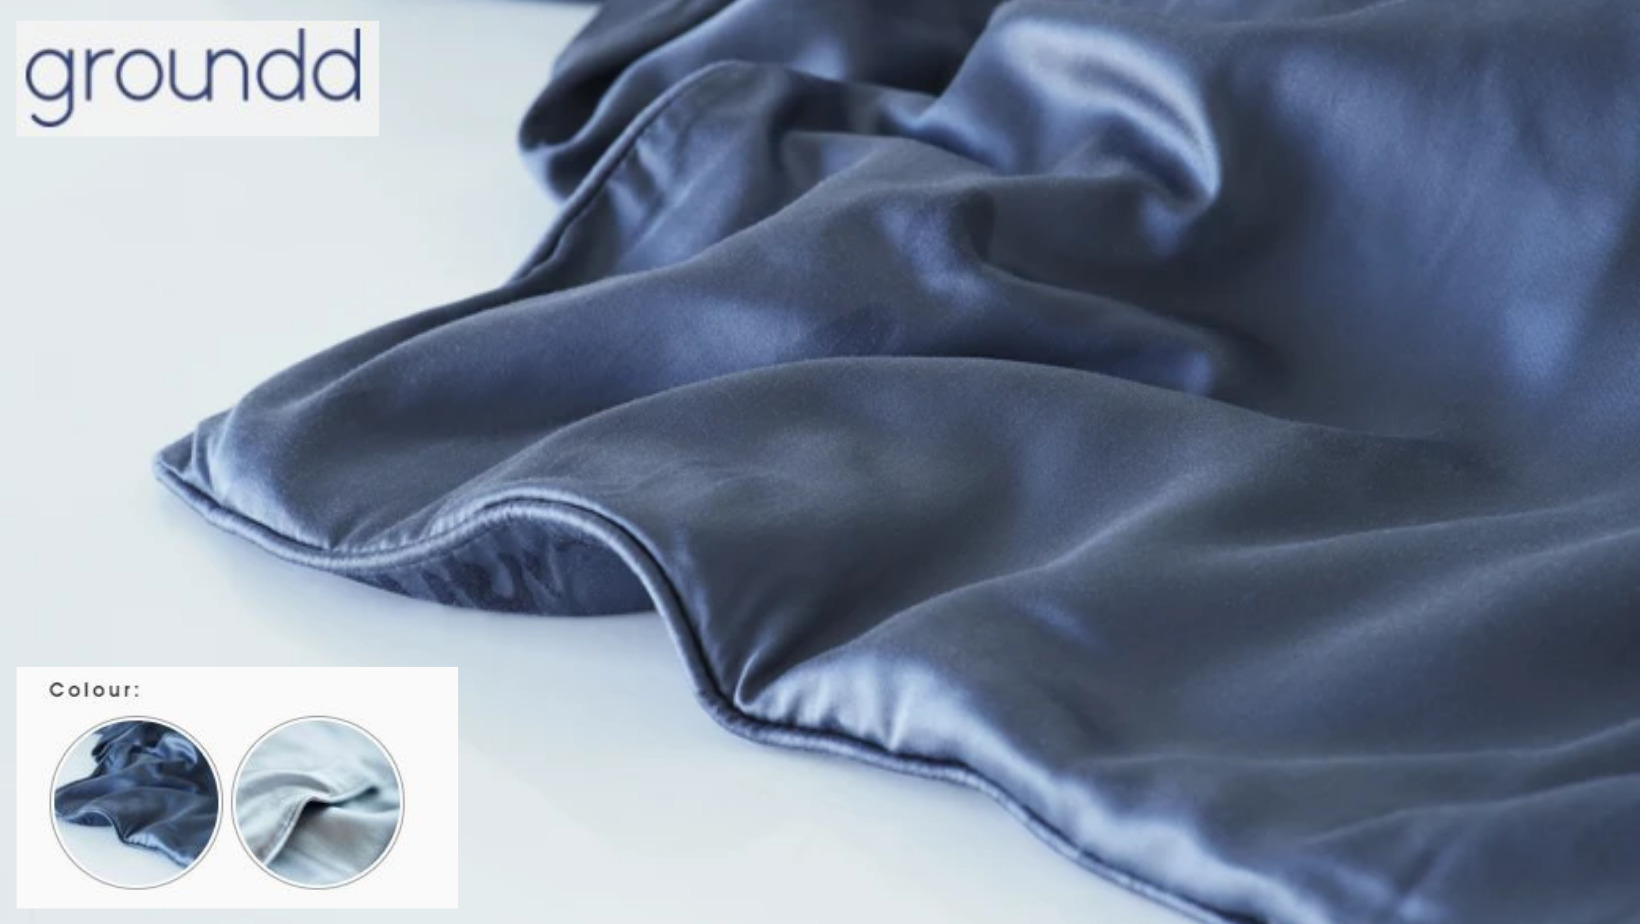 Weighted Blankets NZ - Groundd